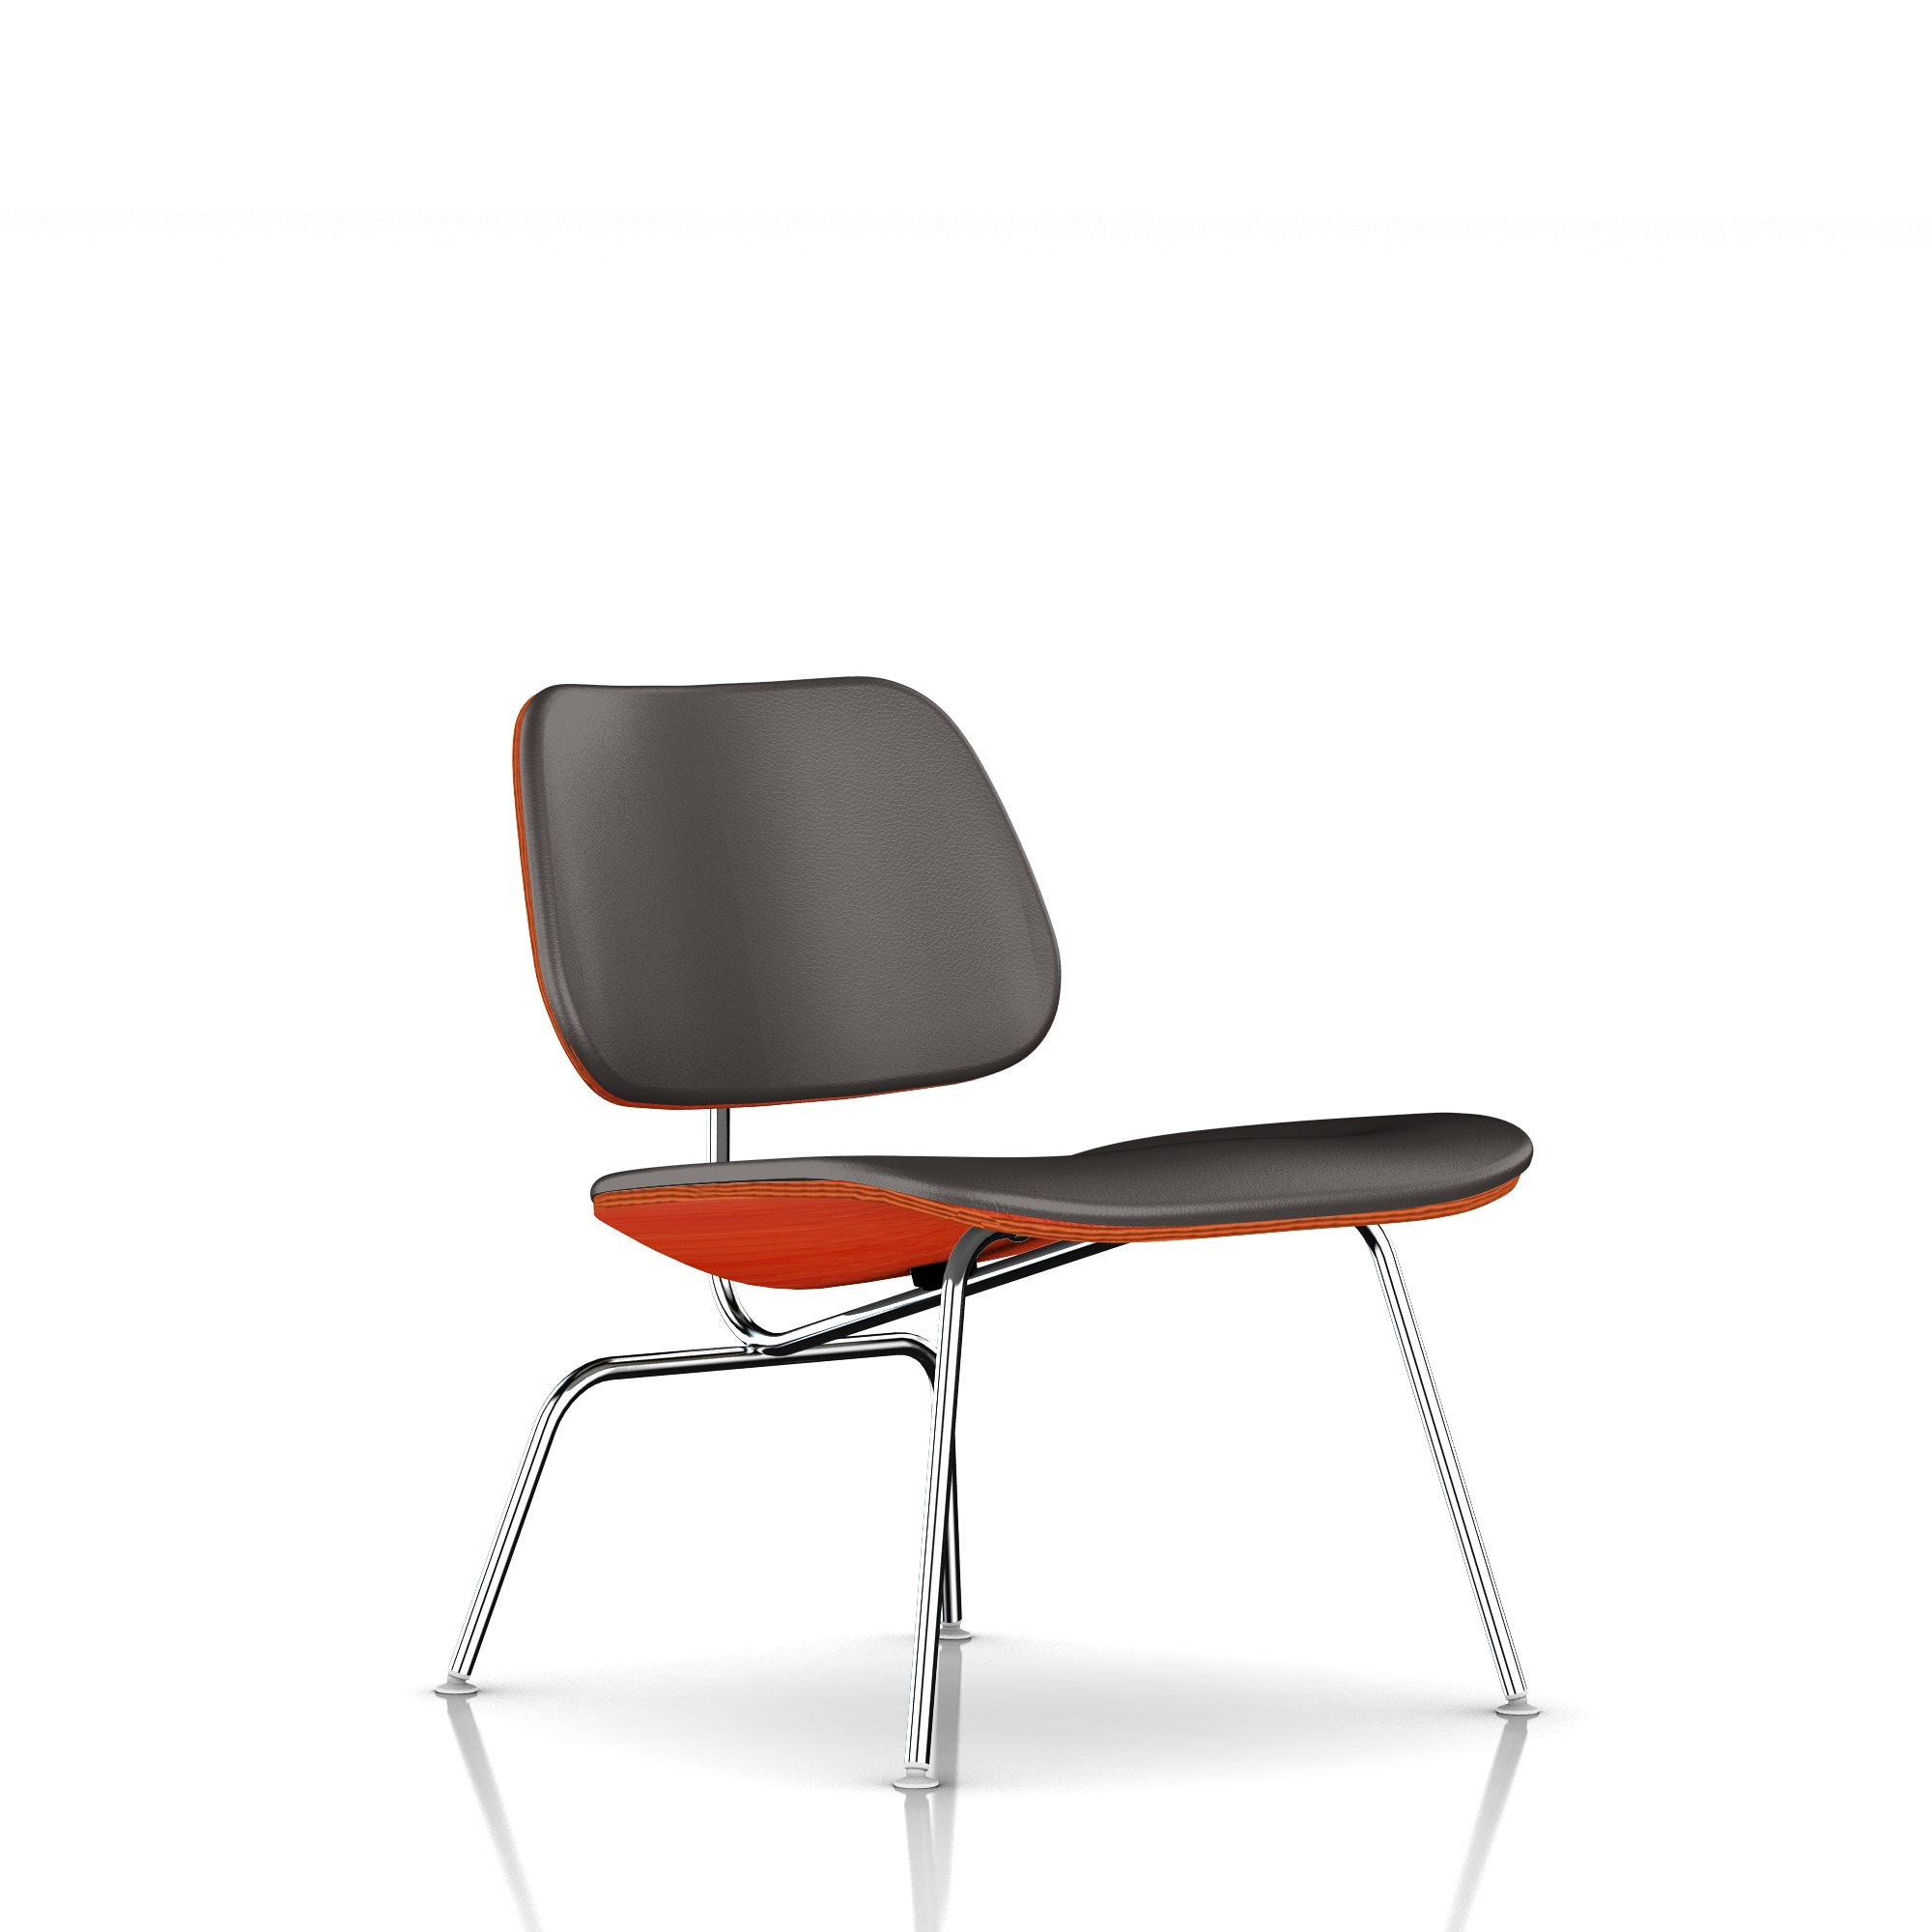 Eames Molded Plywood Lounge Chair in Charcoal MCL Leather by Herman Miller